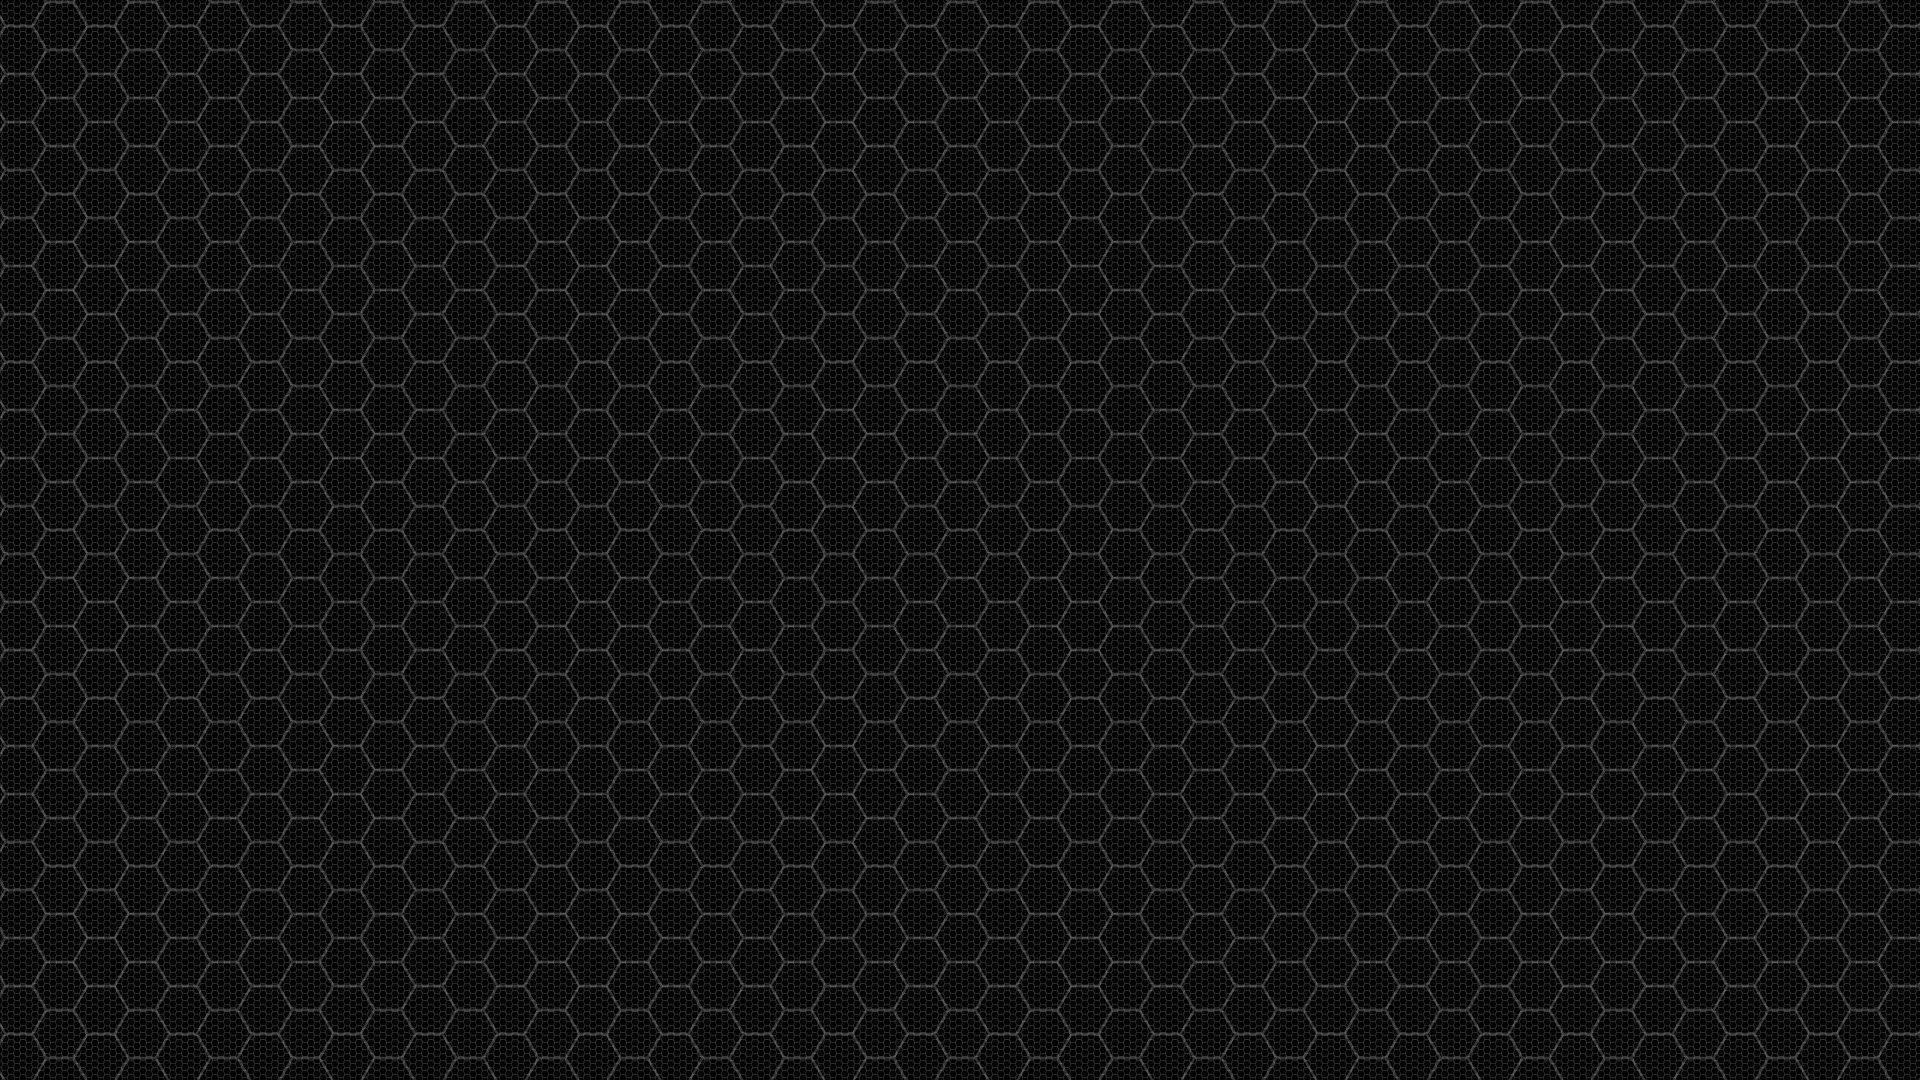 Res: 1920x1080, Title : black carbon wallpapers – wallpaper cave. Dimension : 1920 x 1080.  File Type : JPG/JPEG